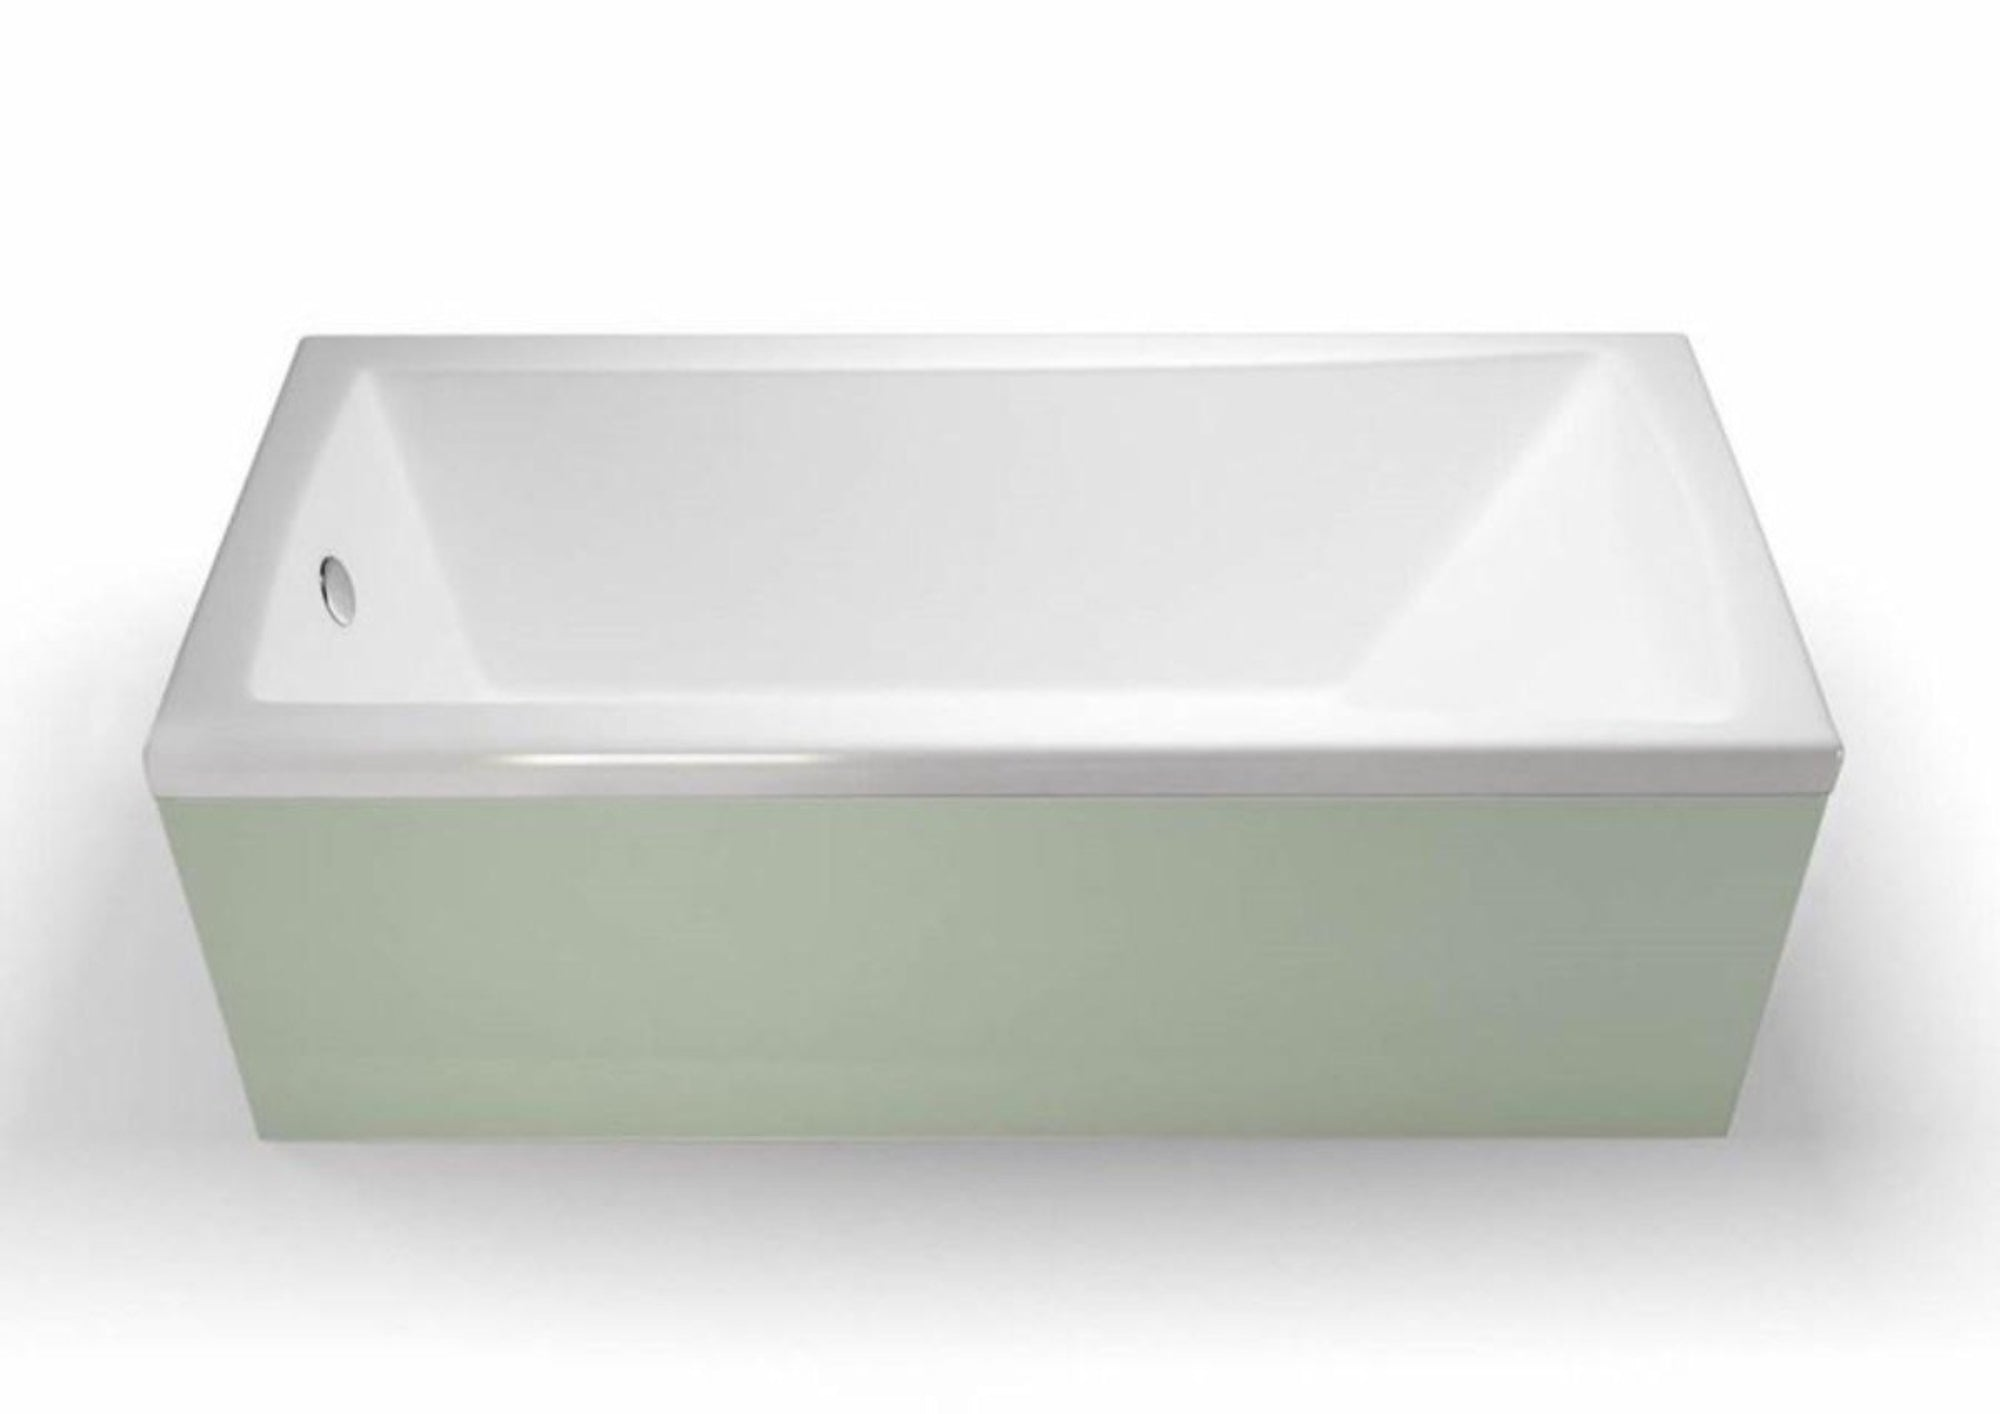 Sustain 1600 x 700mm Single Ended Bath - blueskybathrooms